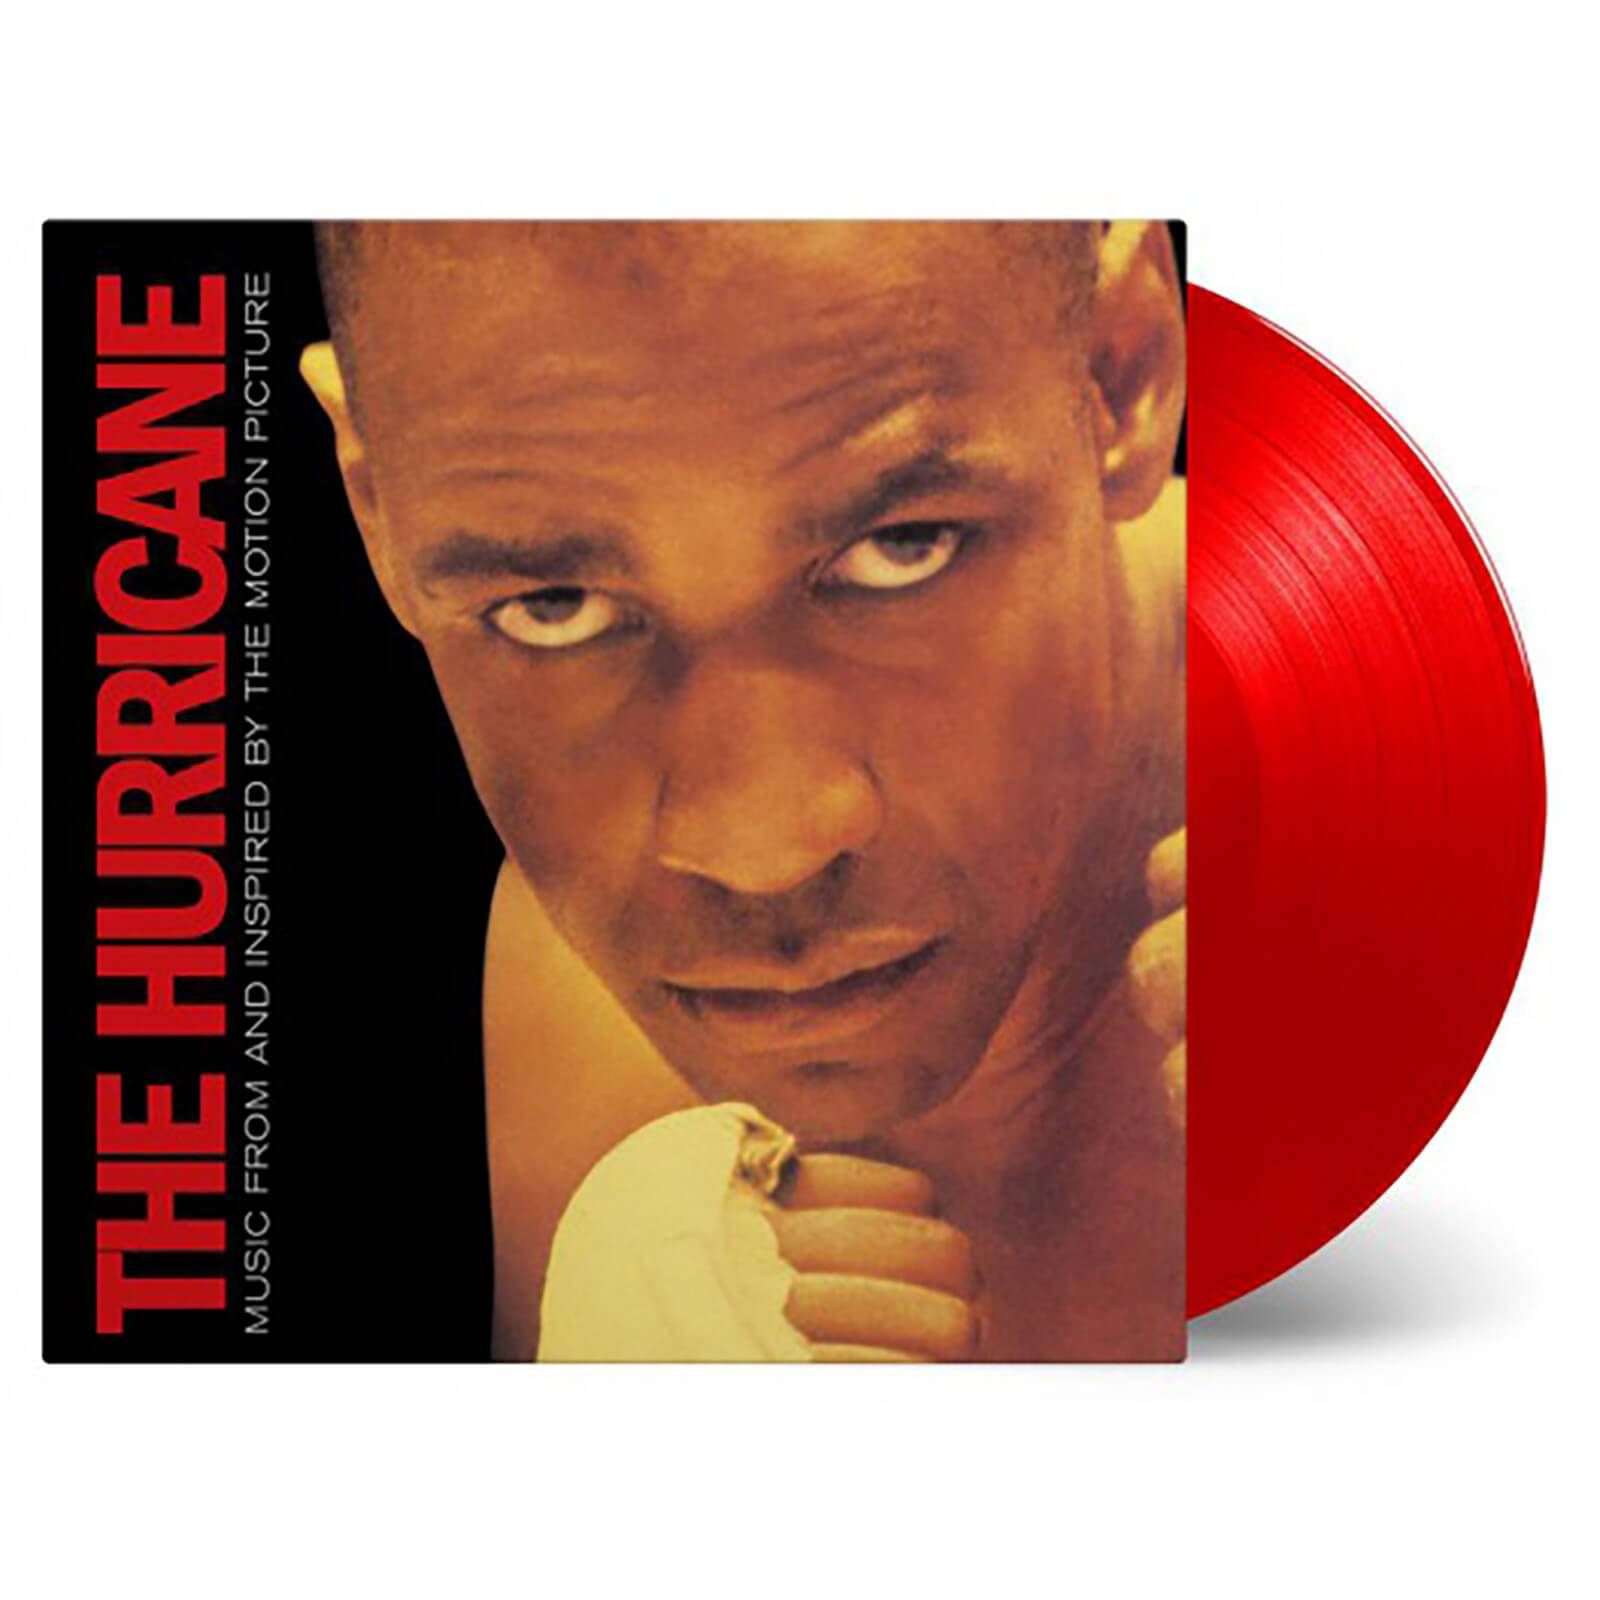 Music On Vinyl: At The Movies Various Artists - Hurricane (Soundtrack) [2LP] (LIMITED RED 180 Gram Audiophile Vinyl, gatefold, first time on vinyl, etched D-side, numbered to 1000, import)